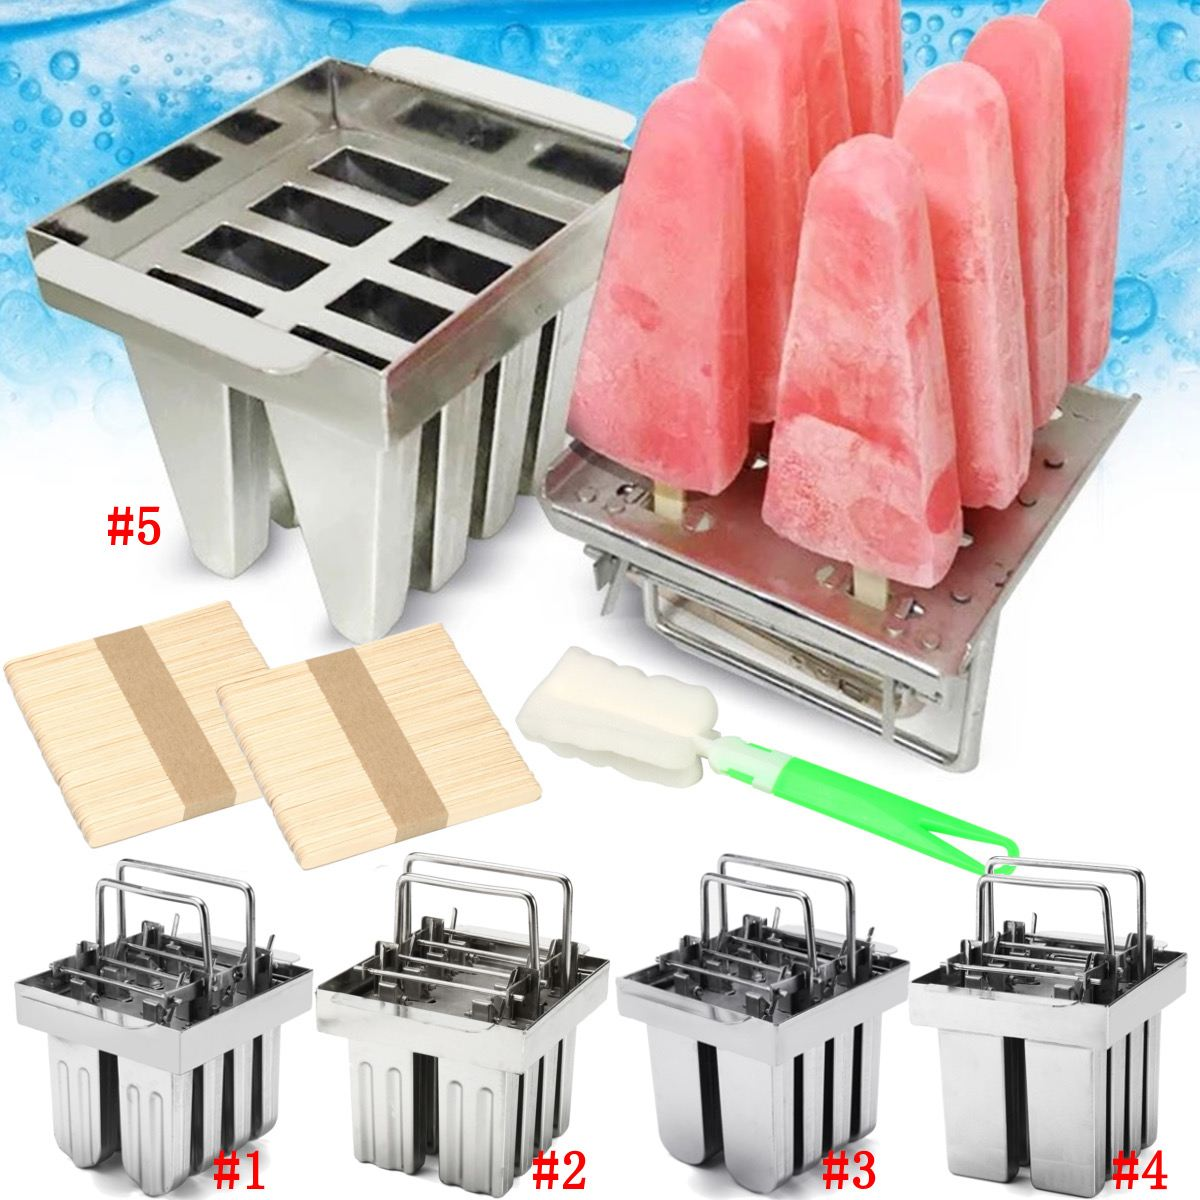 8 Molds 304 Stainless Steel DIY Ice Cream Mould Popsicle Fruit Ice Cream Make Tool Silver Ice Cream Maker Stick Holder Mould New